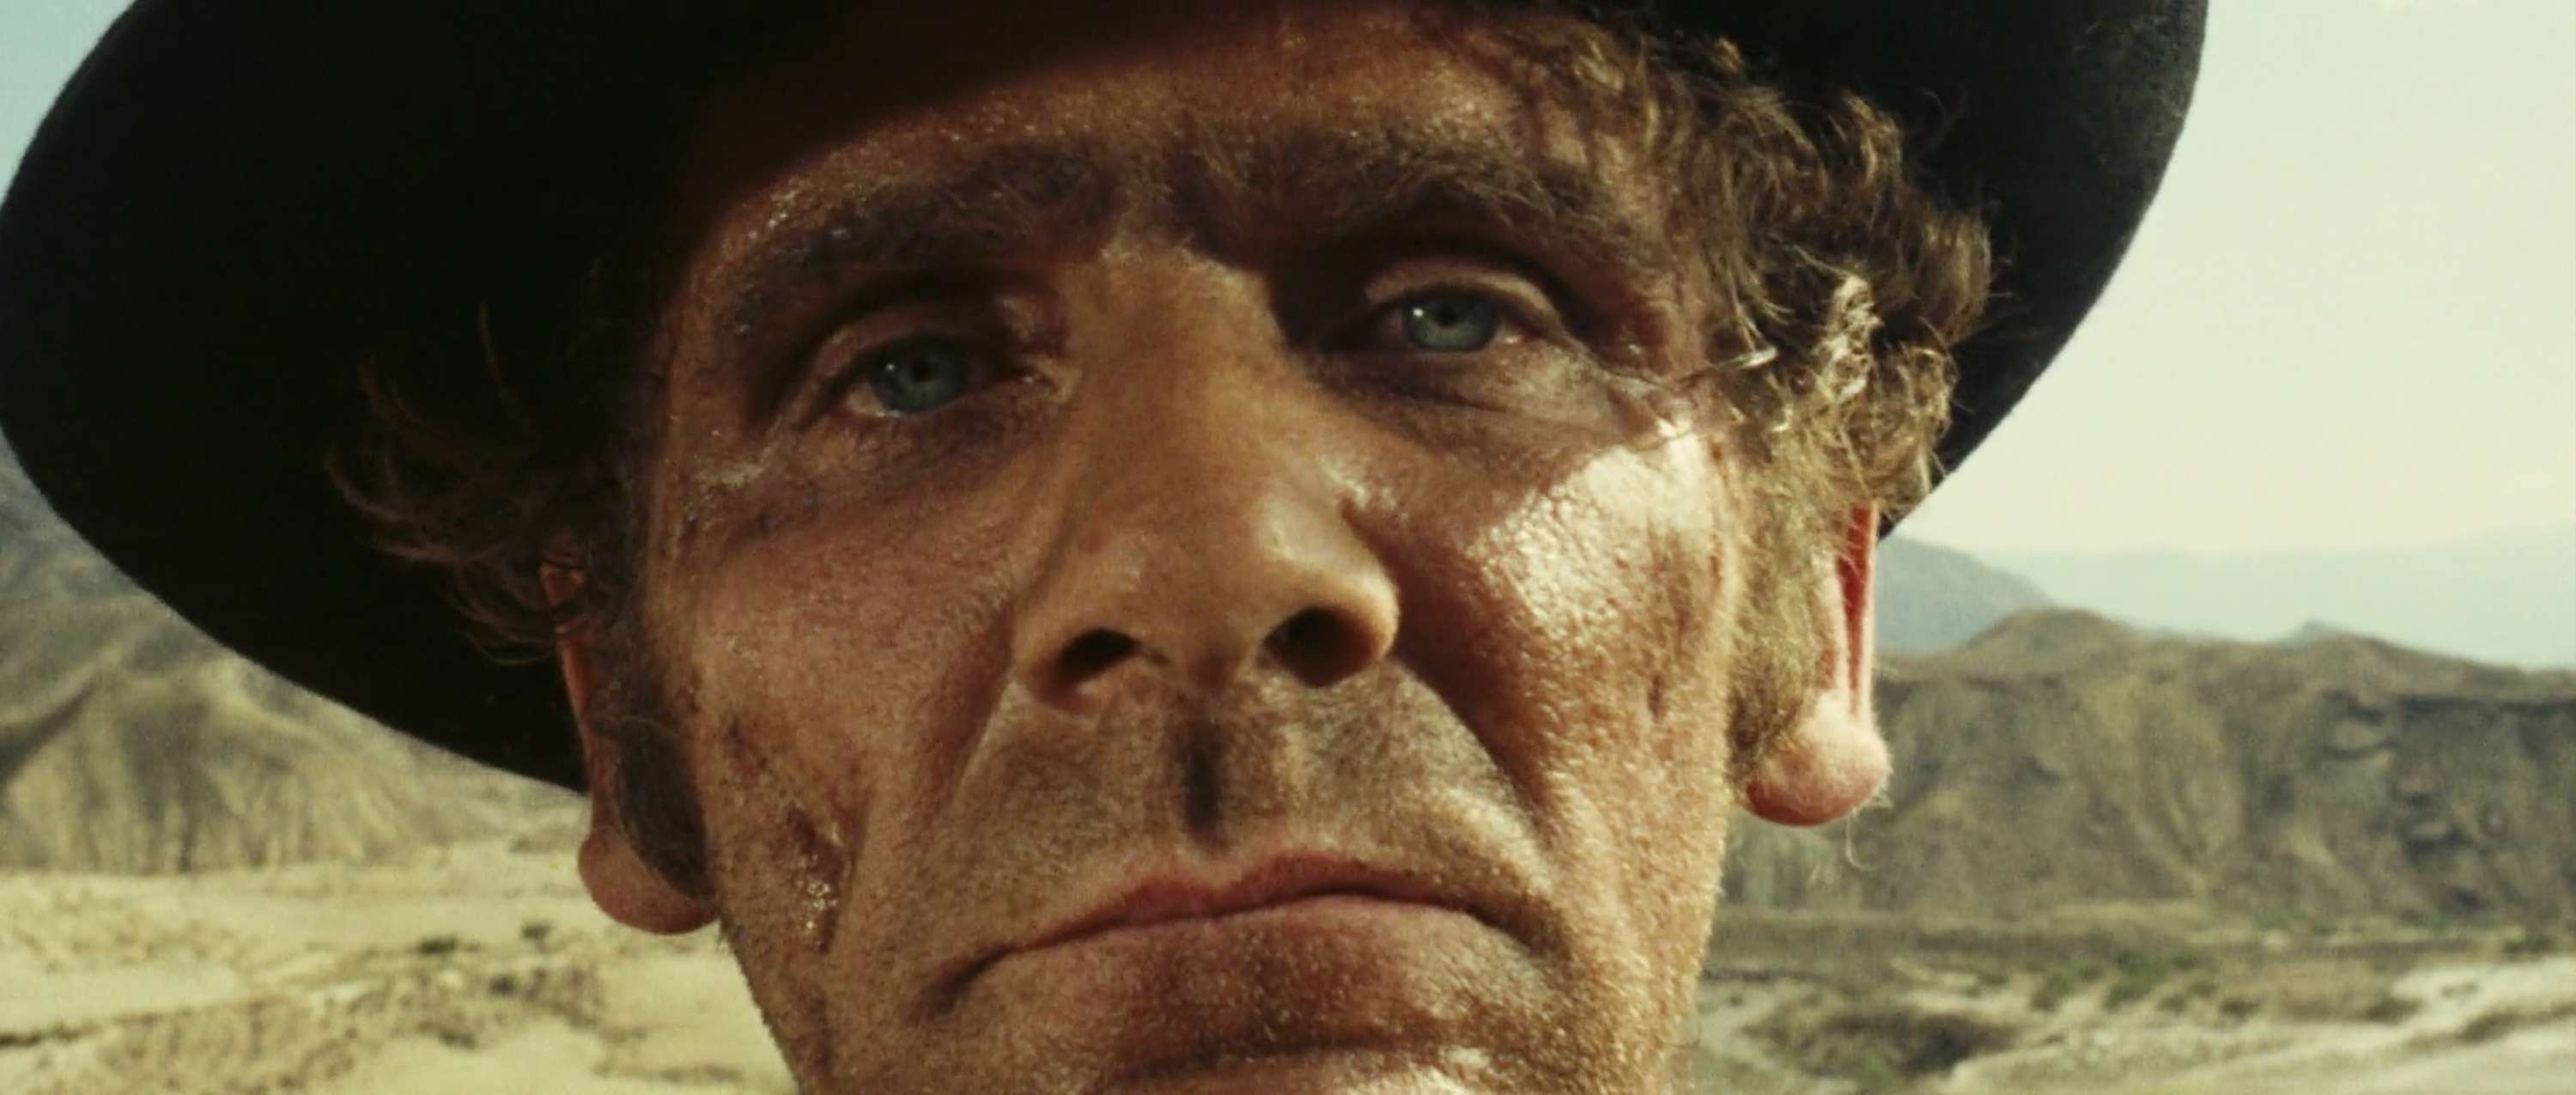 The Good The Bad And The Ugly By Sergio Leone 736ci Atlas Of Places #facebook #photos #people #ugly #ugly photos #not attractive #fb #anoying. the good the bad and the ugly by